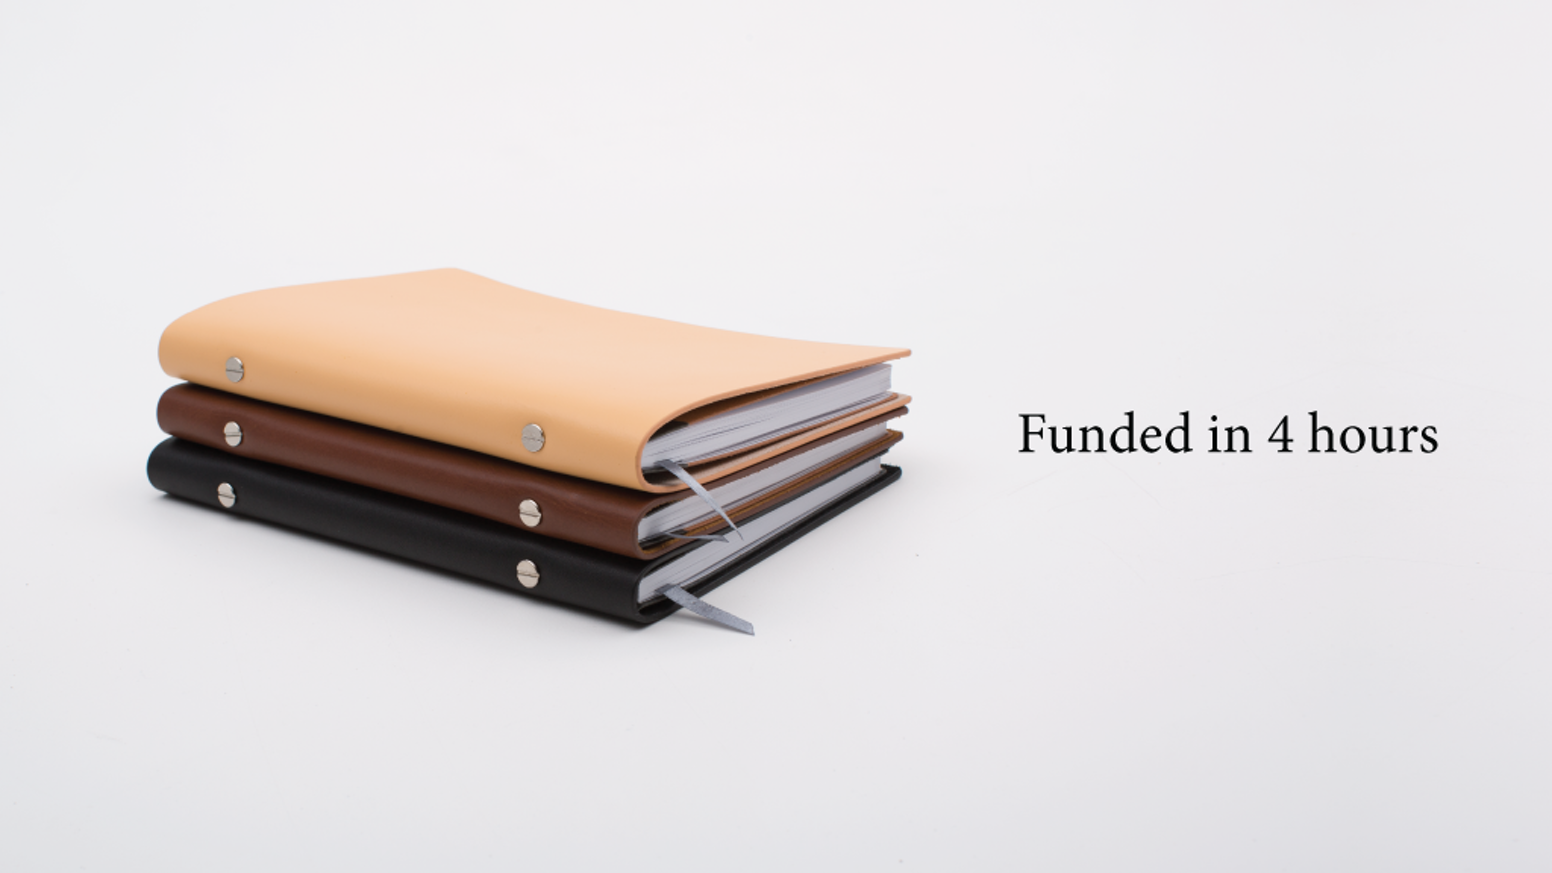 An heirloom quality notebook system you'll want to pass down. Inner notebook refills mount brilliantly into a full-grain leather cover.